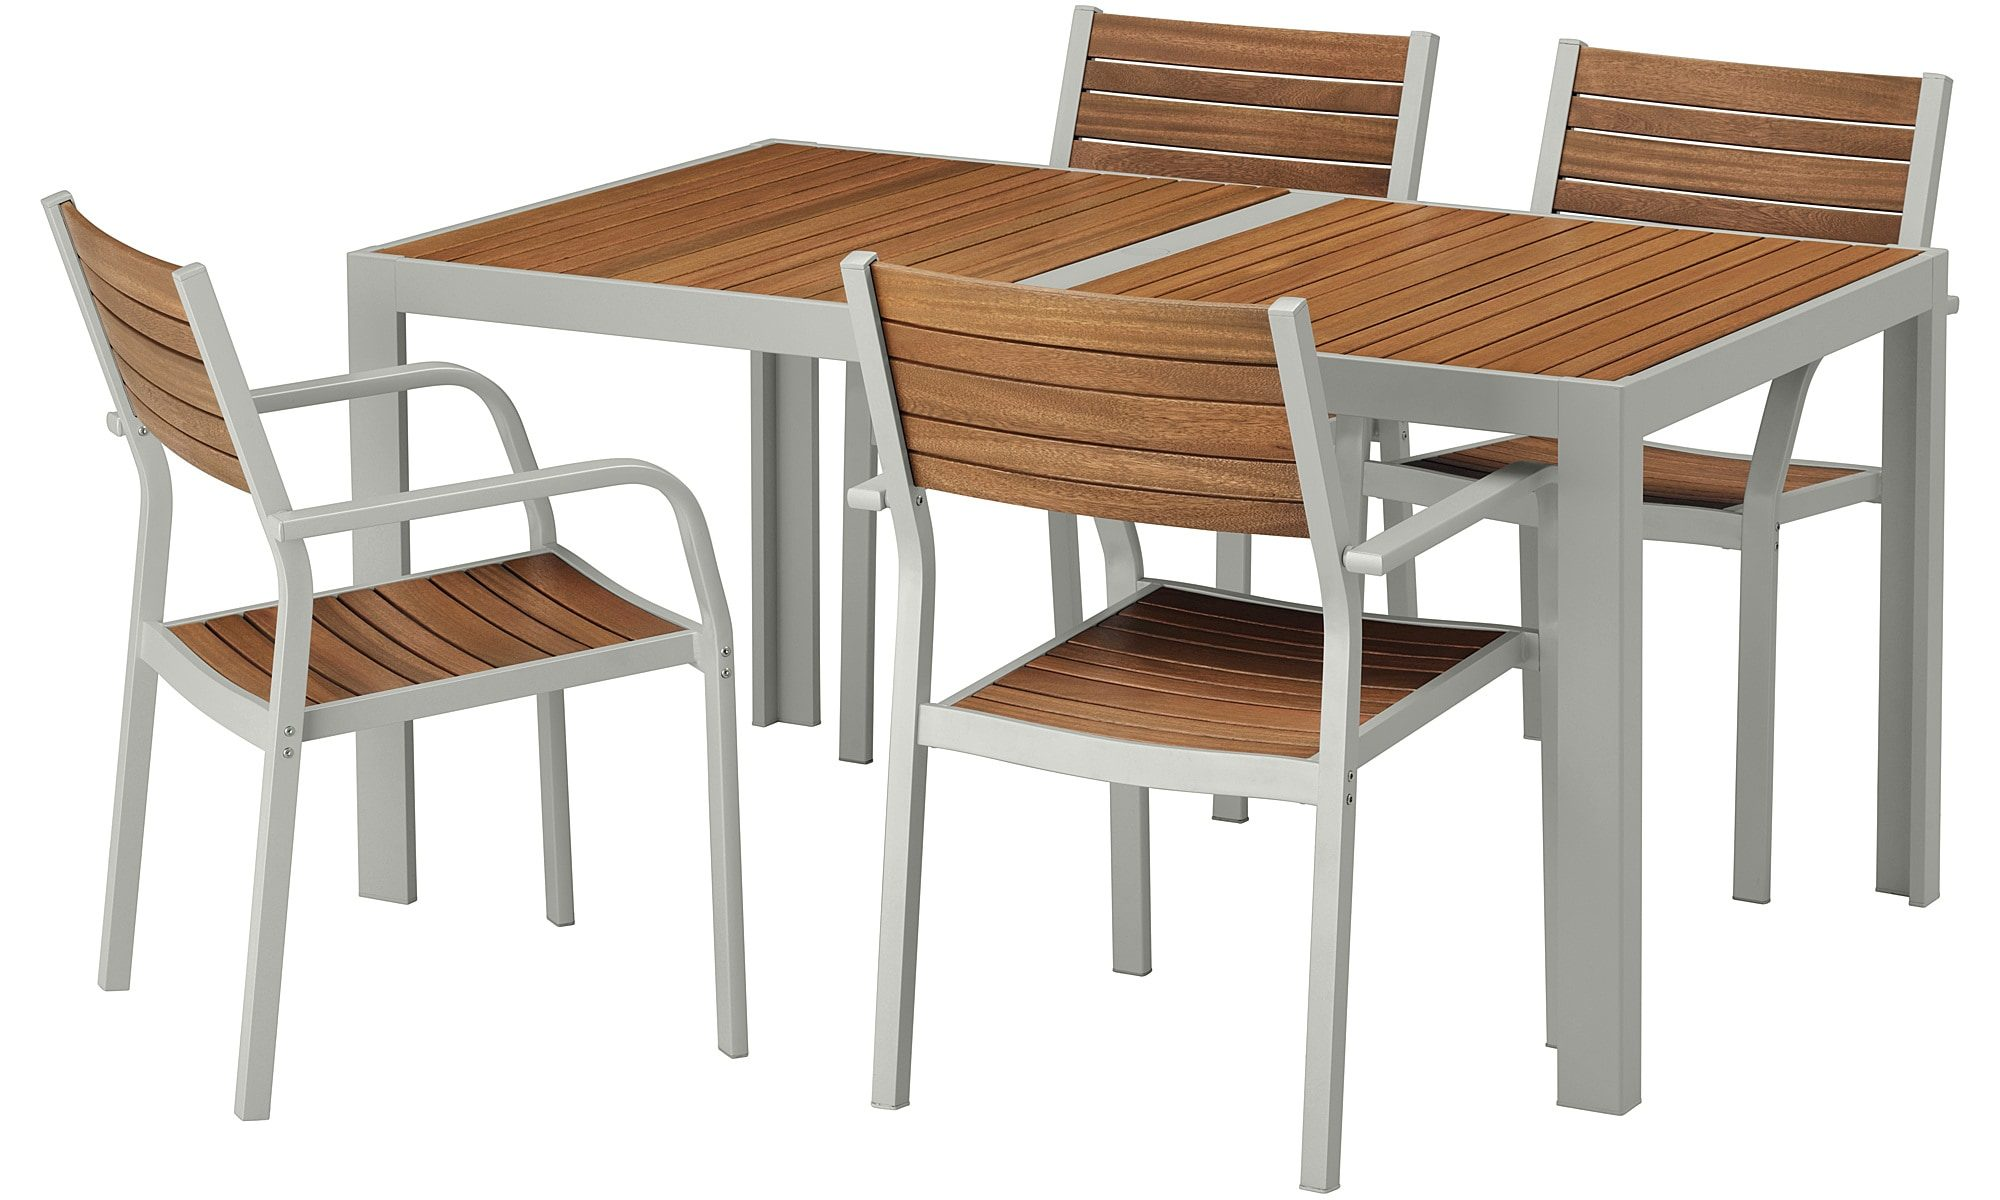 Sjlland Table And 4 Chairs Outdoor Sjlland Light Brownlight with outdoor table and chairs